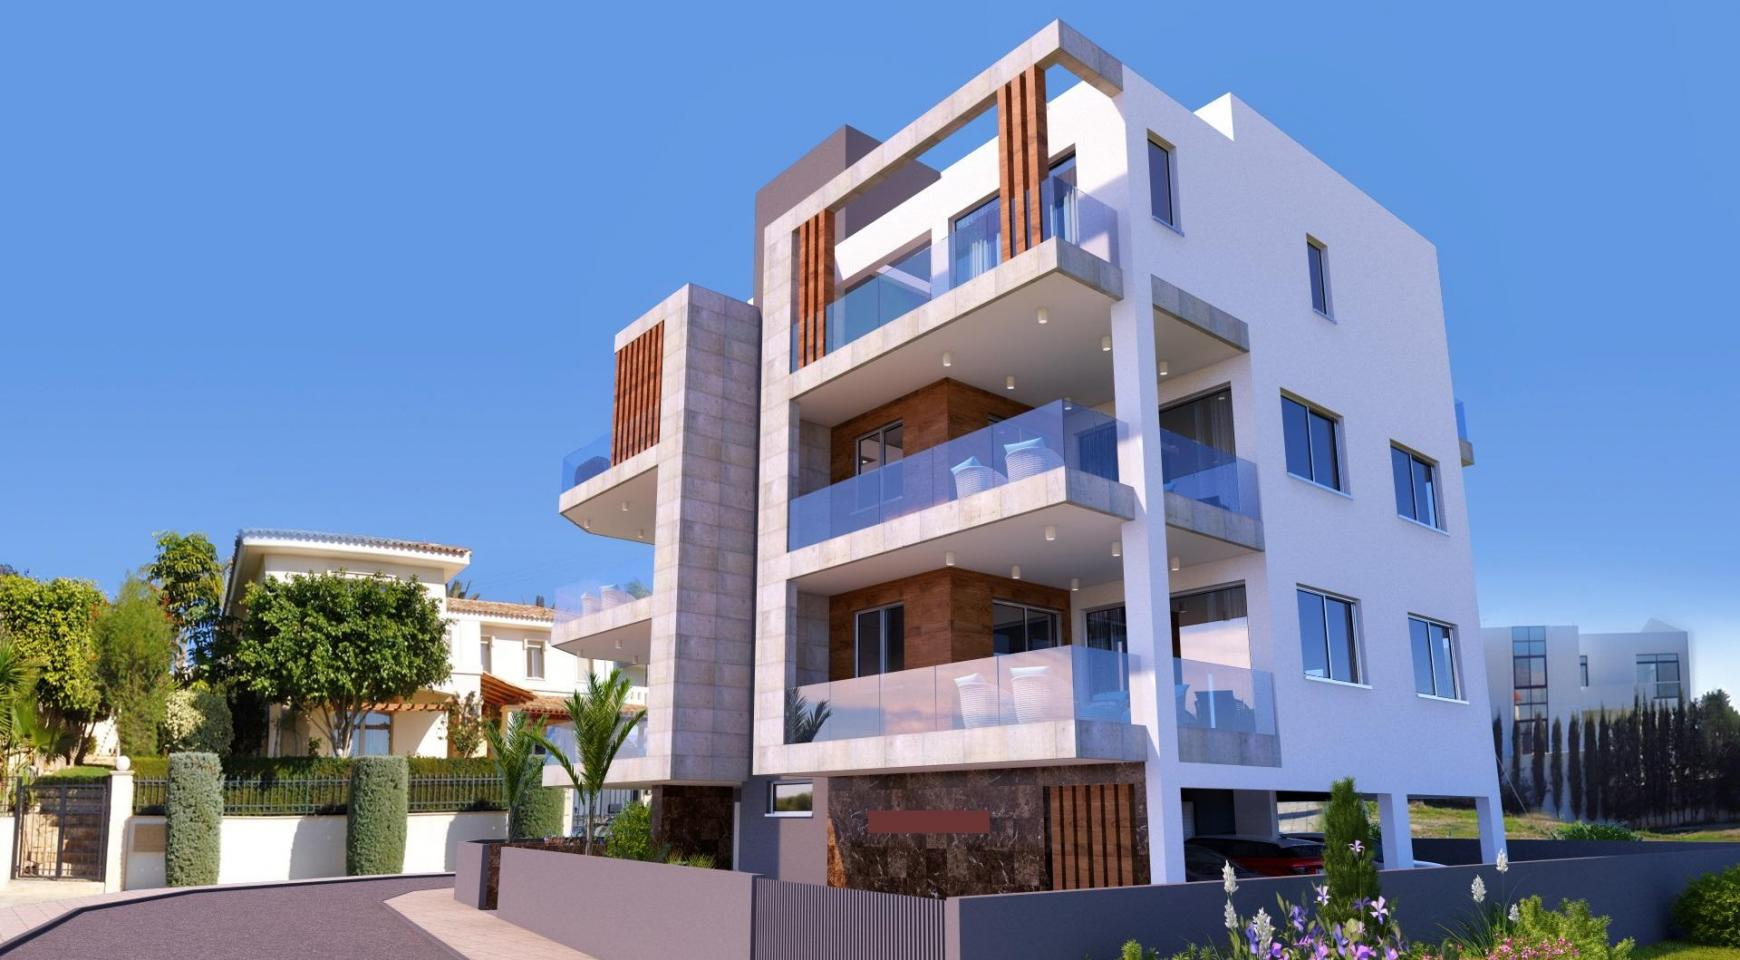 New 3 Bedroom Apartment in a Contemporay Building in Potamos Germasogeia - 3